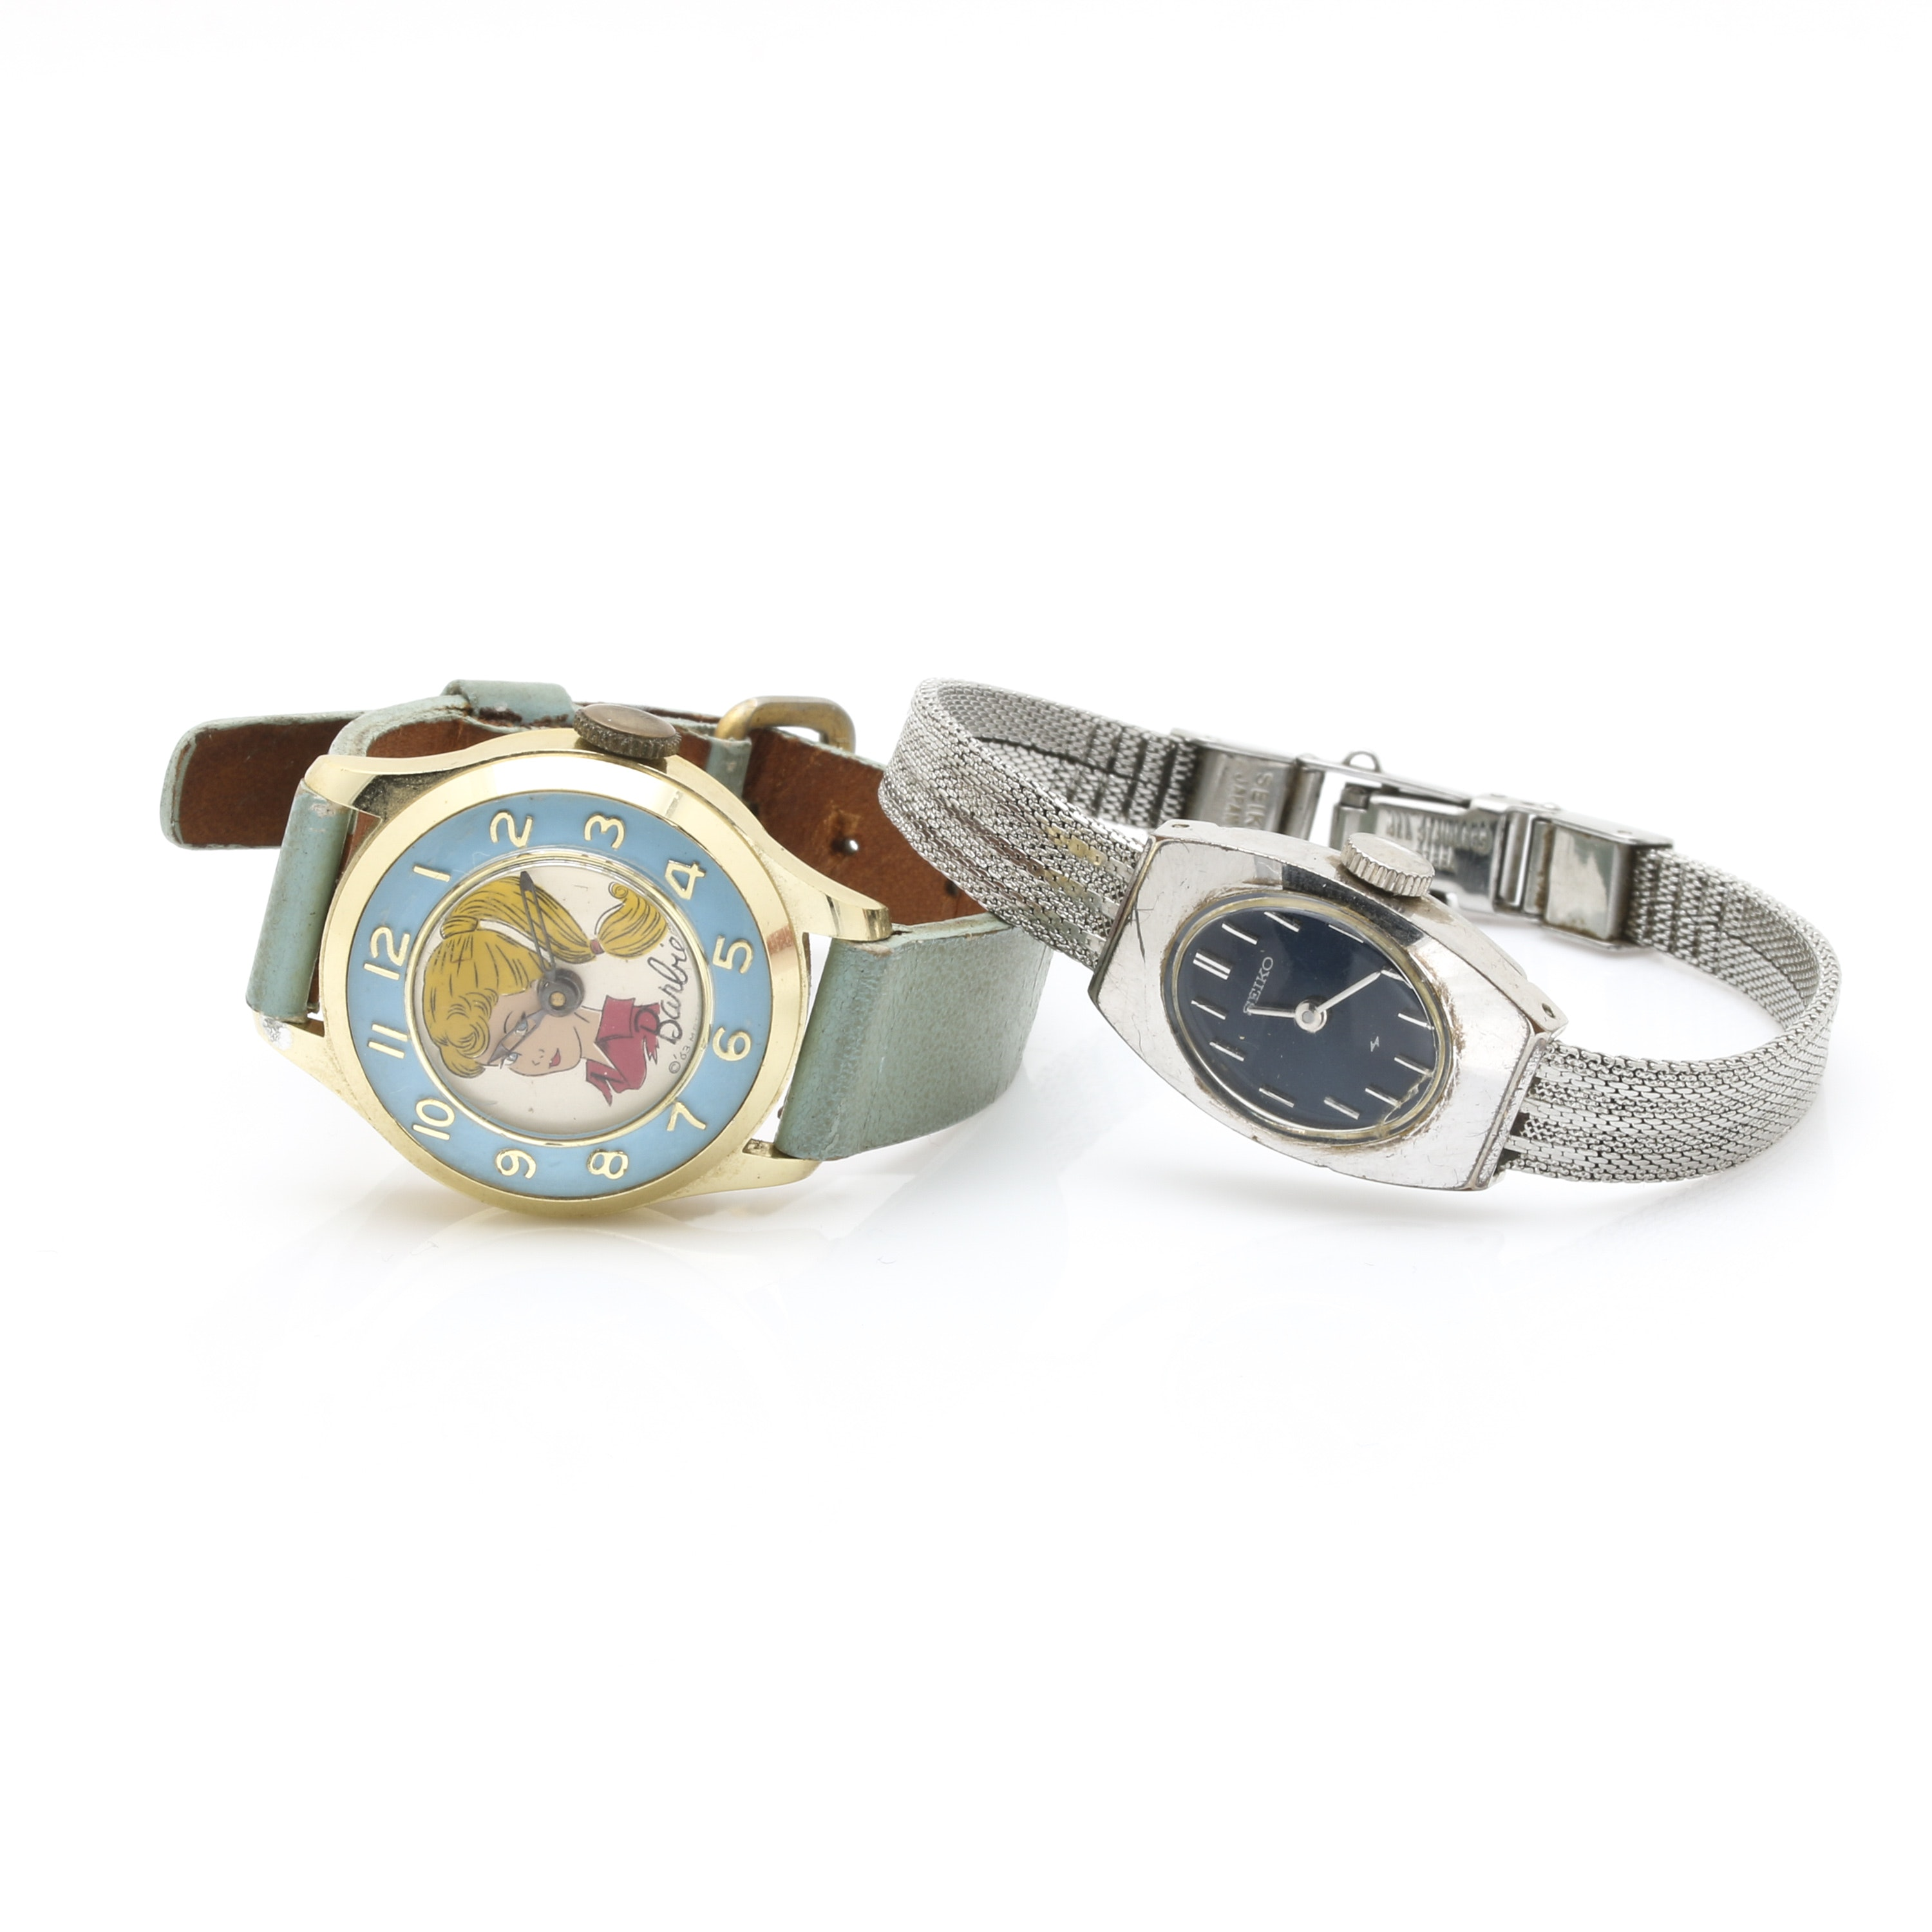 Assortment of Wristwatches Featuring Barbie and Seiko